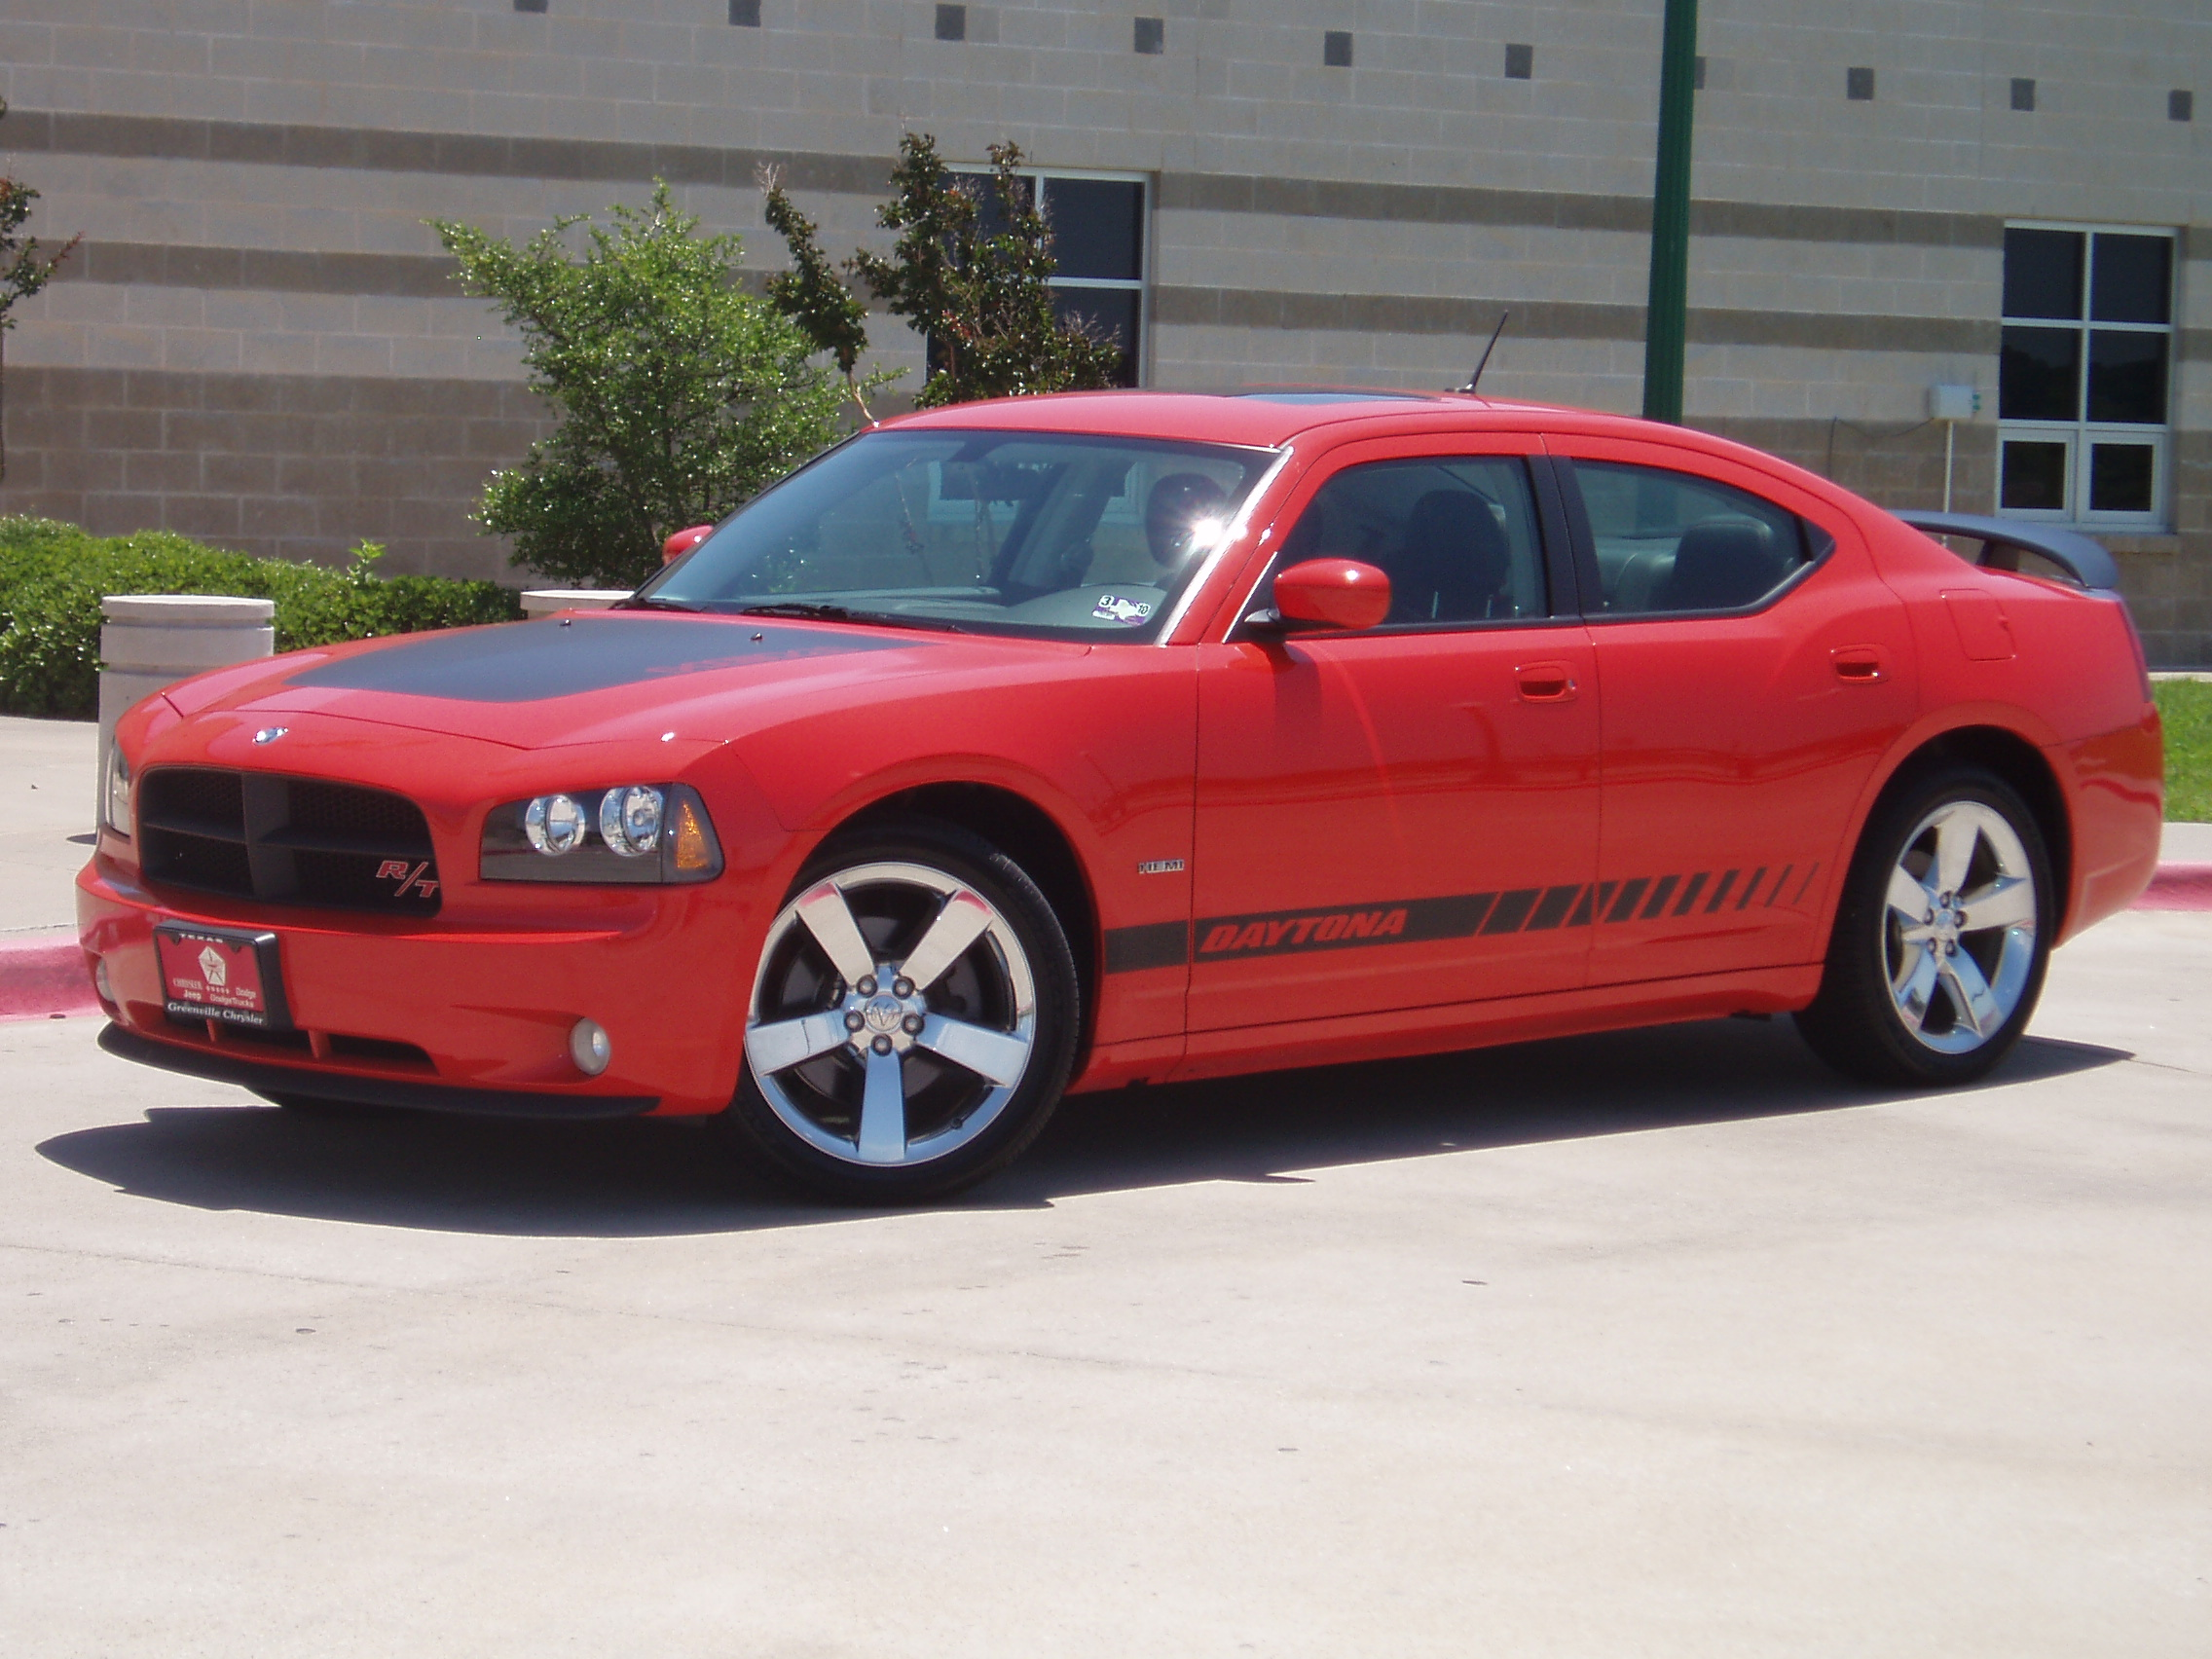 2008 Dodge Charger Daytona